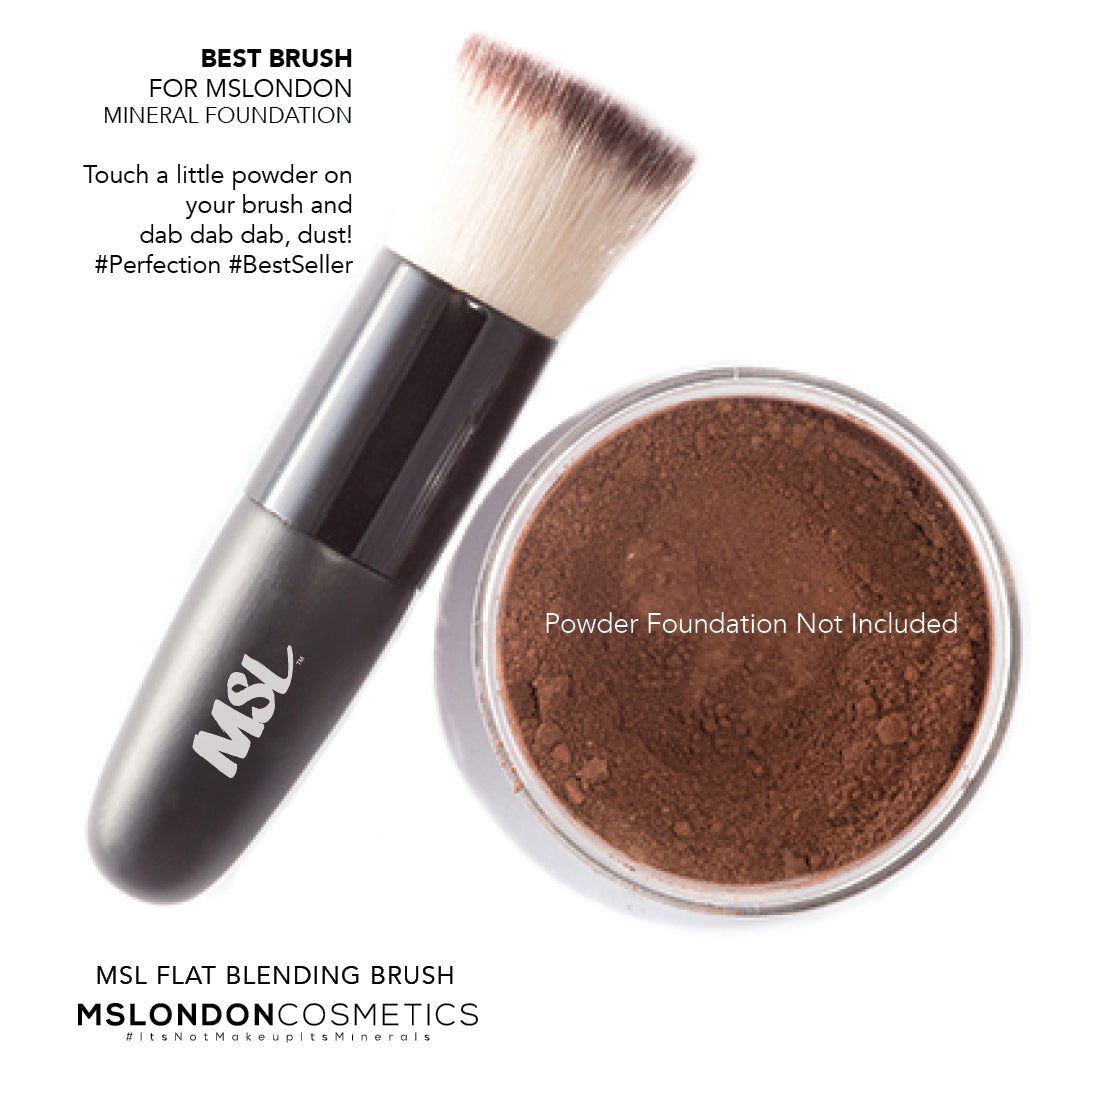 MSL® ICONIC FLAT BLENDING BRUSH (OUT OF STOCK)